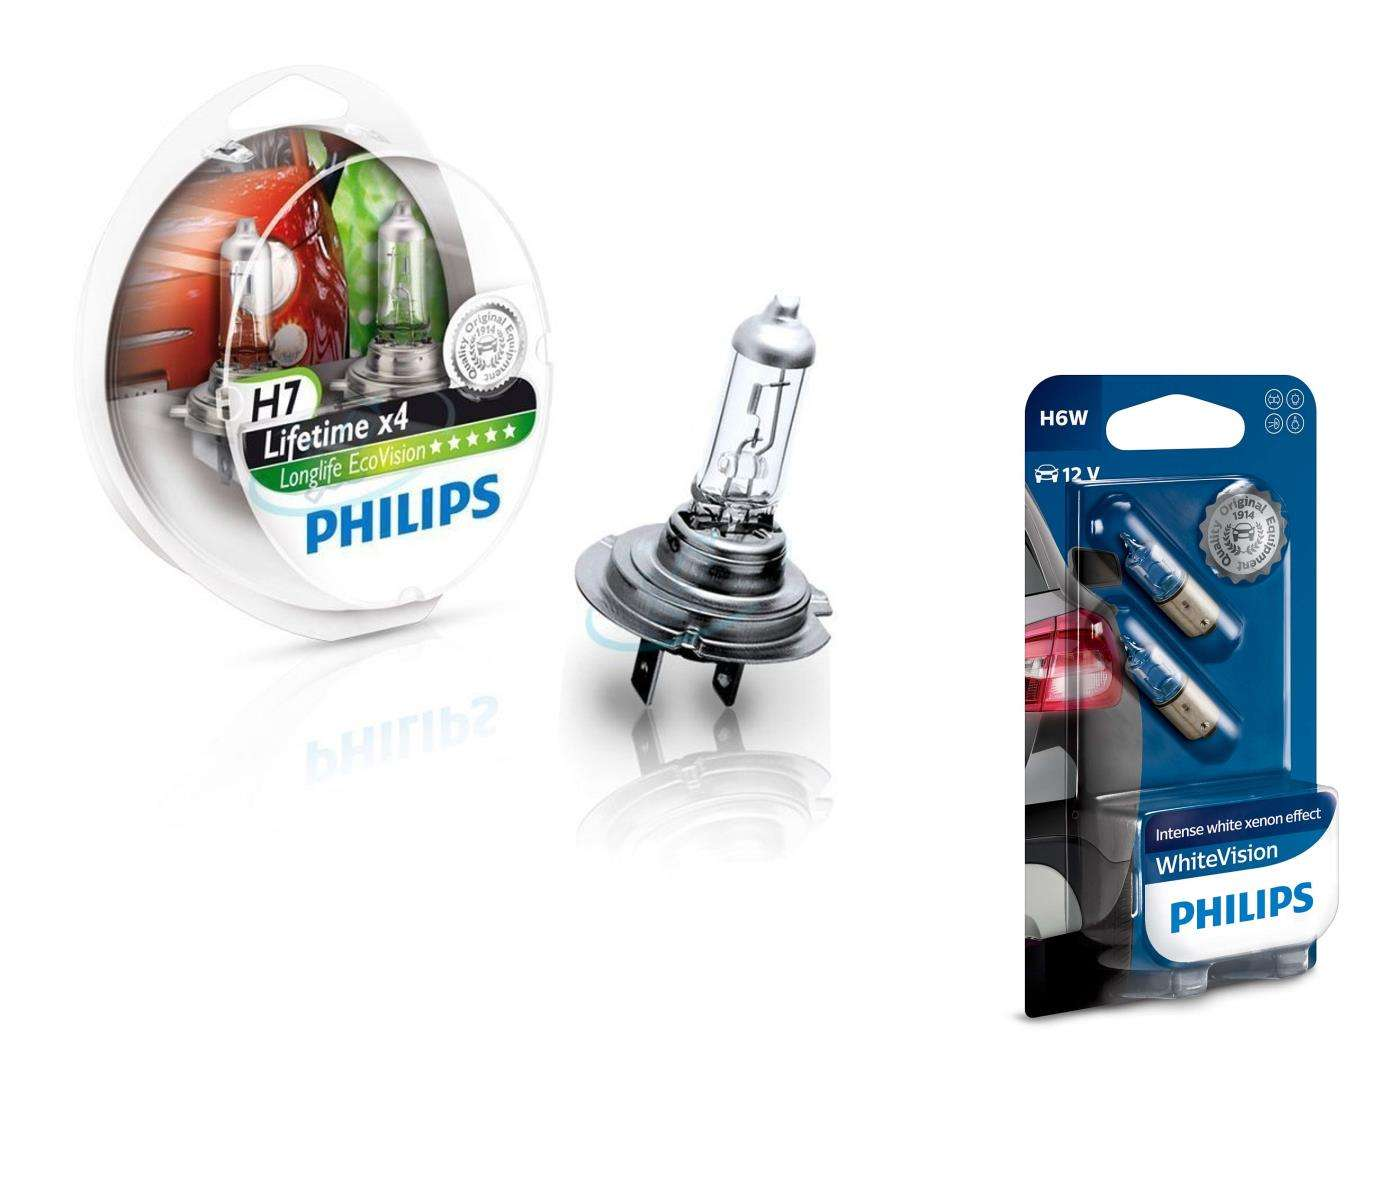 H7-12V-55W-Longlife-Ecovision-x4-Extra-Lifetime-2St-Philips-H6W-Visione-Bianca